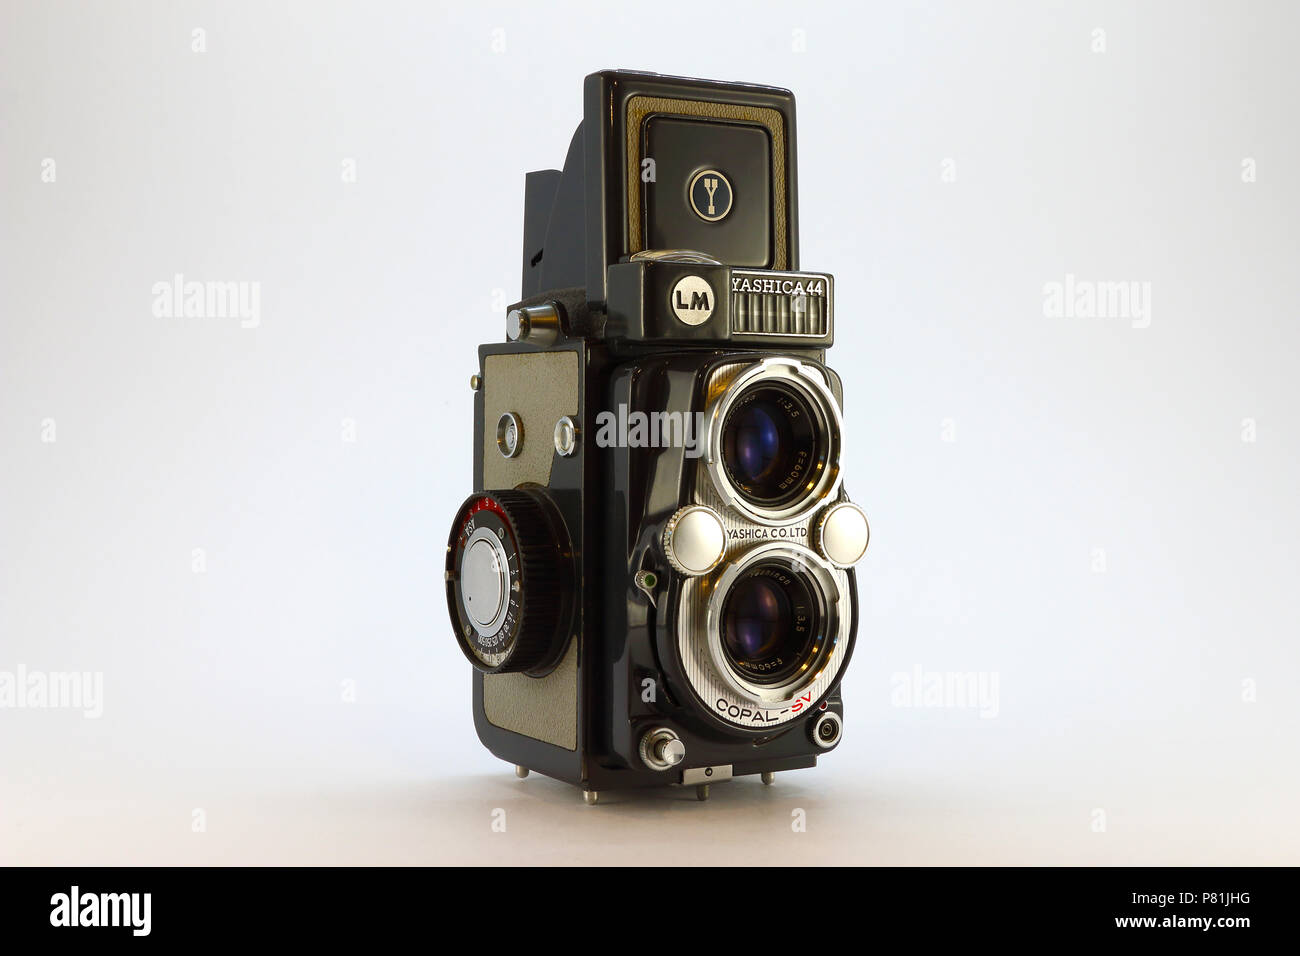 Yashica-44LM from the 1950's top up front view - Stock Image